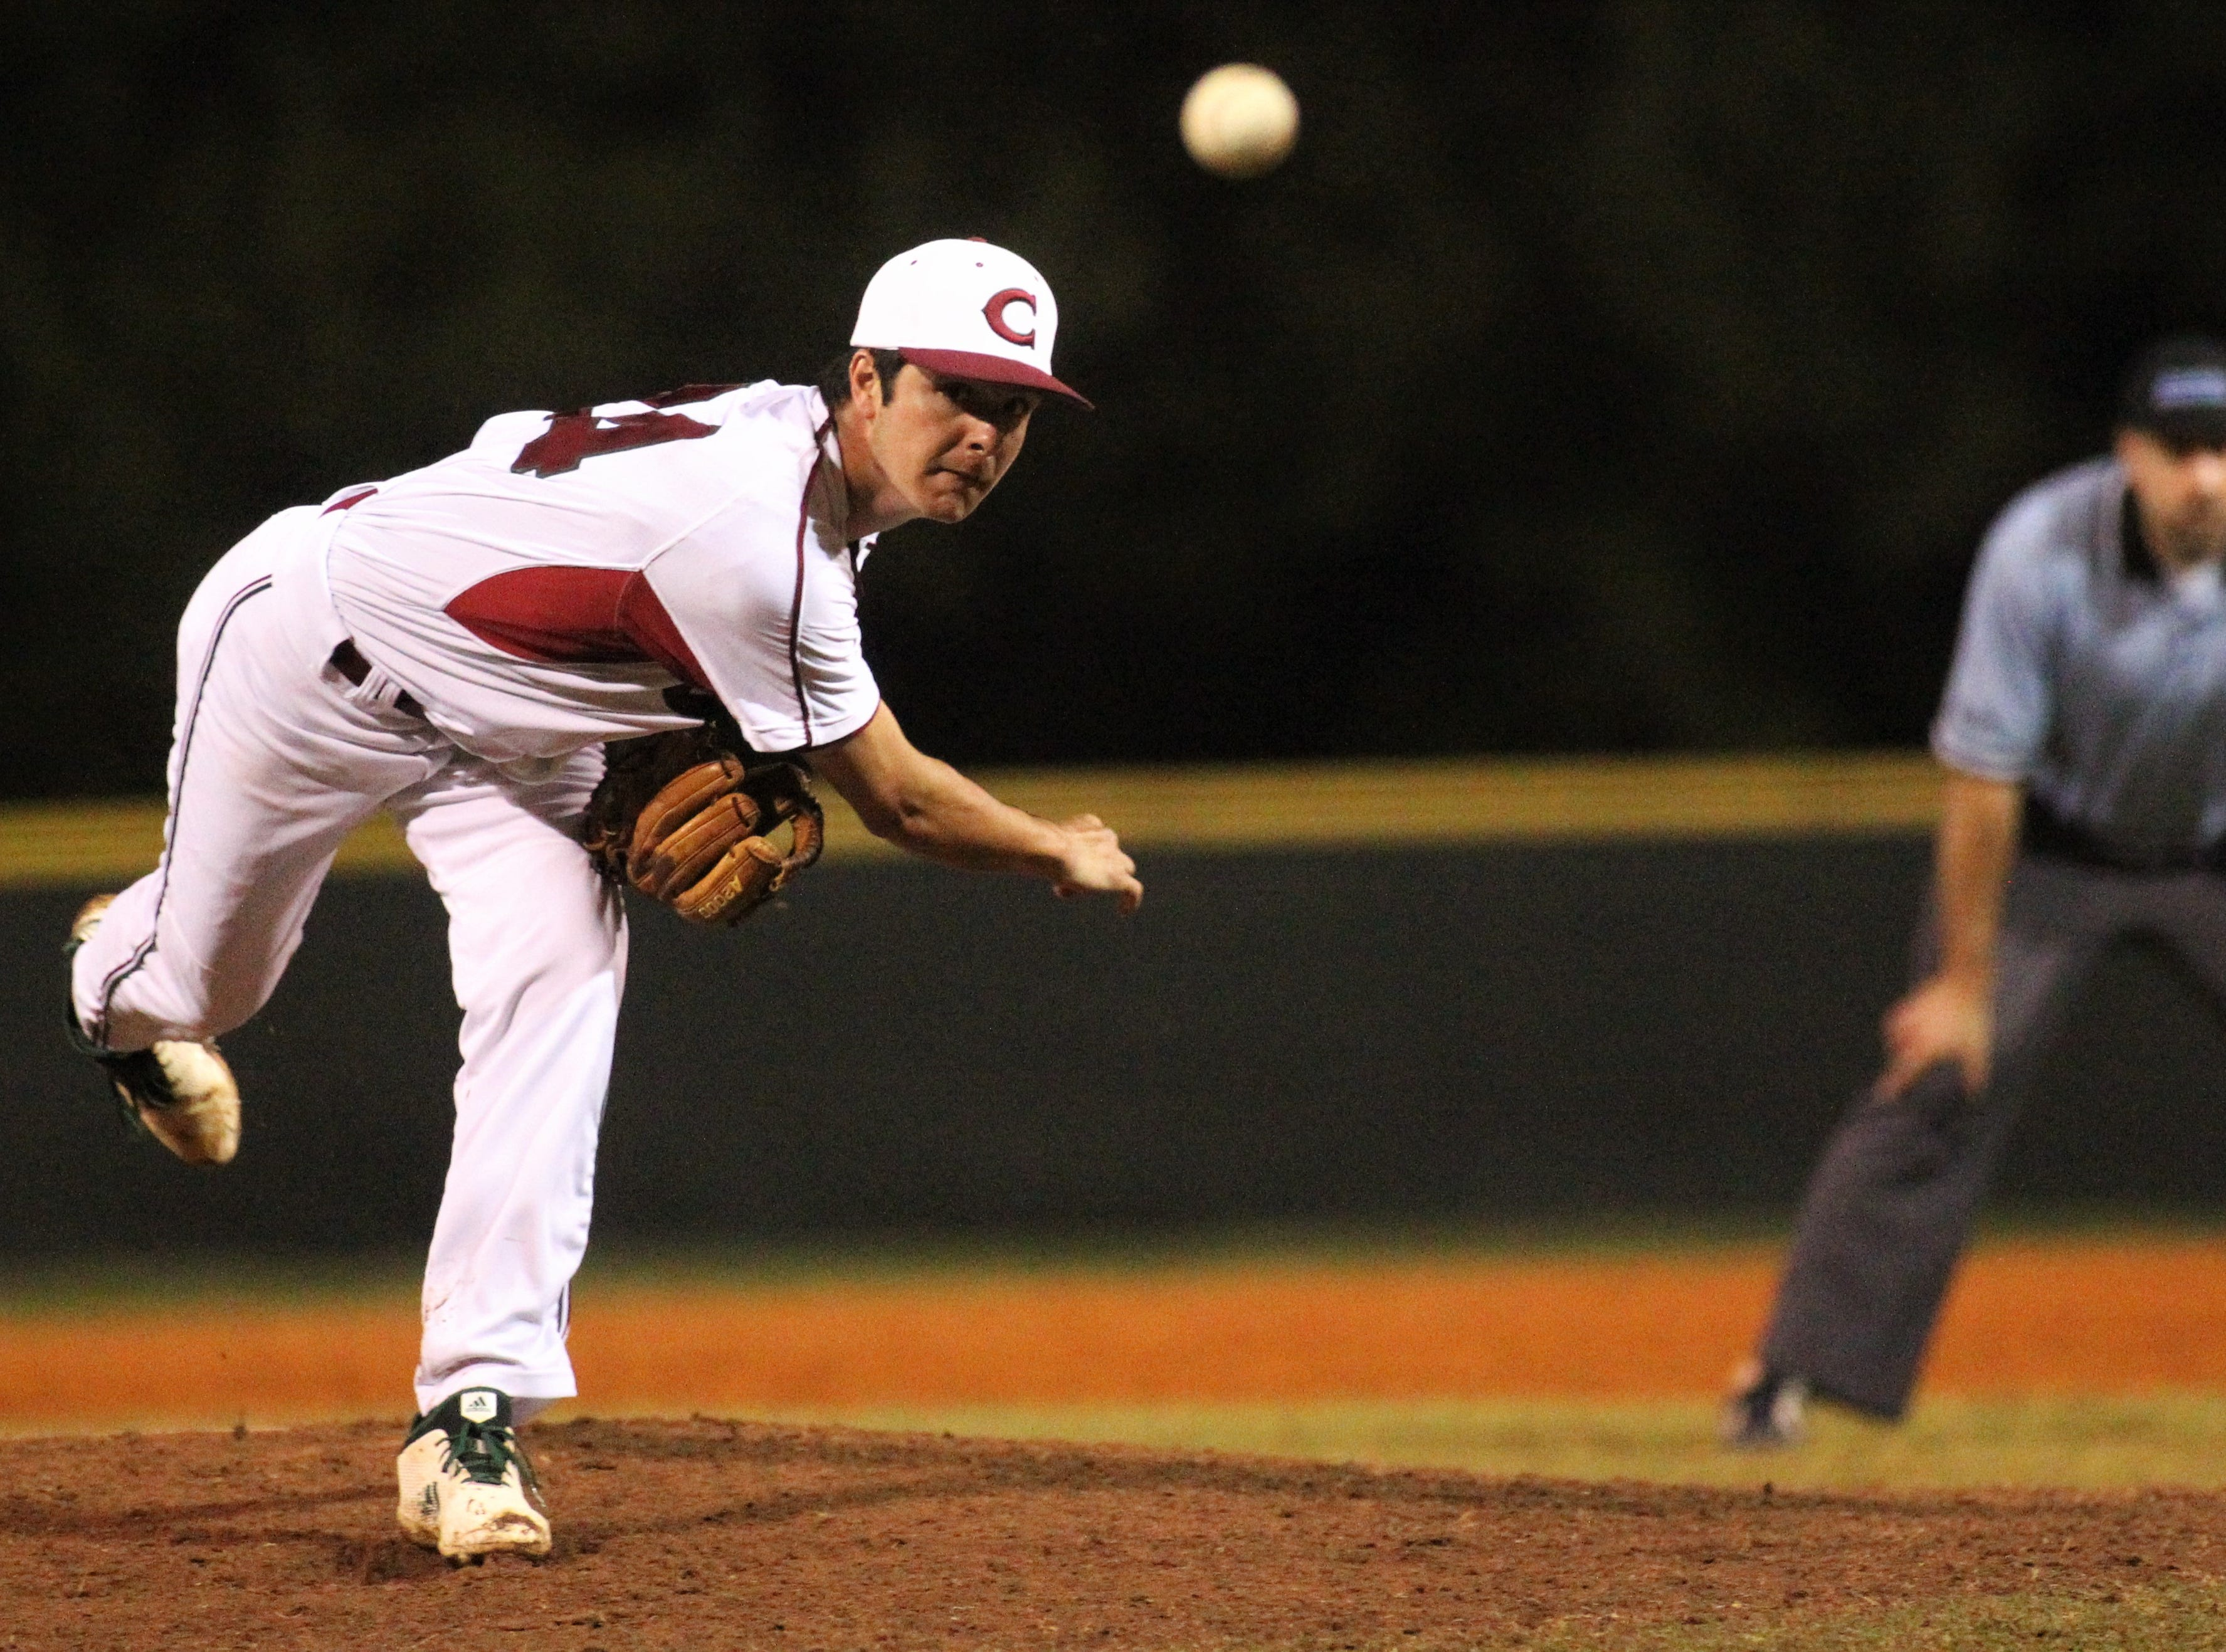 Chiles junior Bryson Cooksey pitches in relief as Chiles won an 11-6 home game against Leon on Friday, April 5, 2019, to force a season split. The Lions won 3-0 earlier in the week.